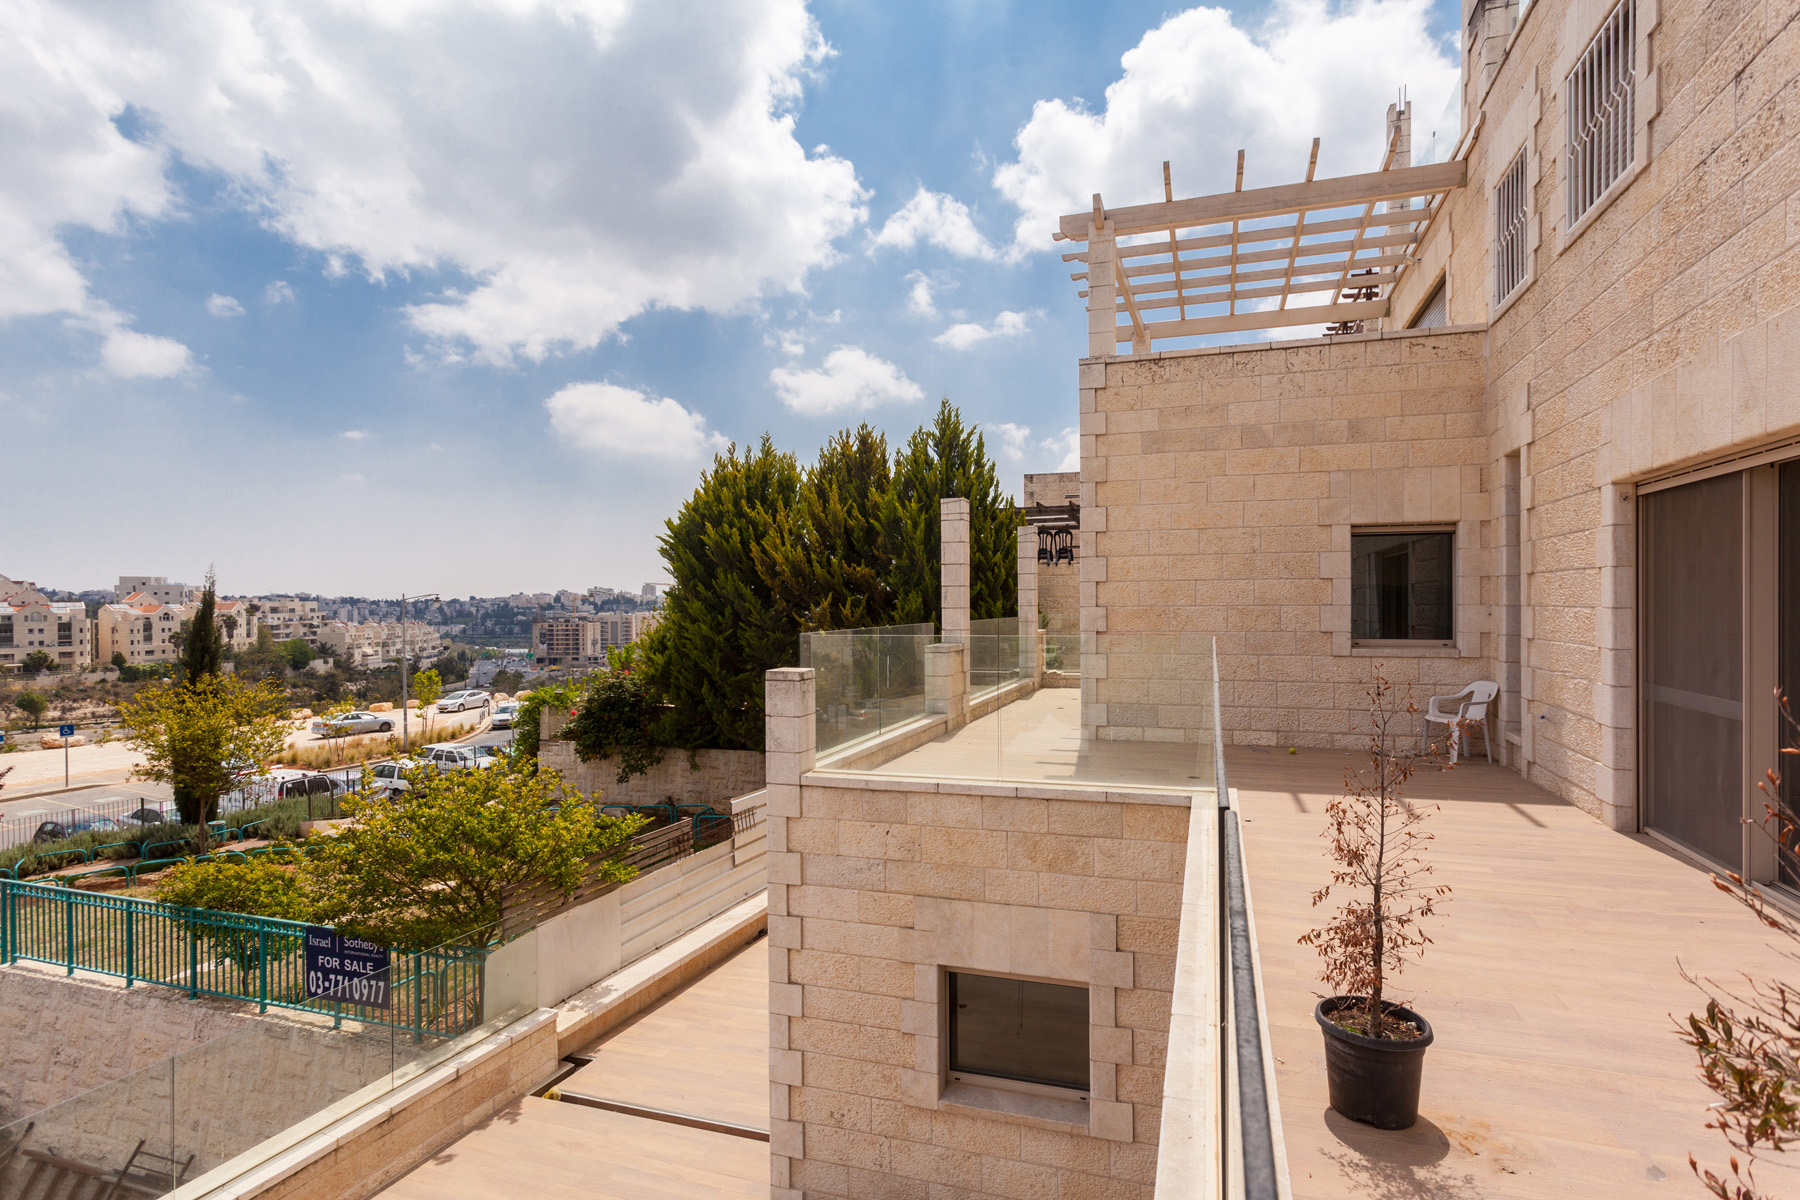 Appartement pour l Vente à Stately Brand New Luxury Apartment Jerusalem, Israel Israël